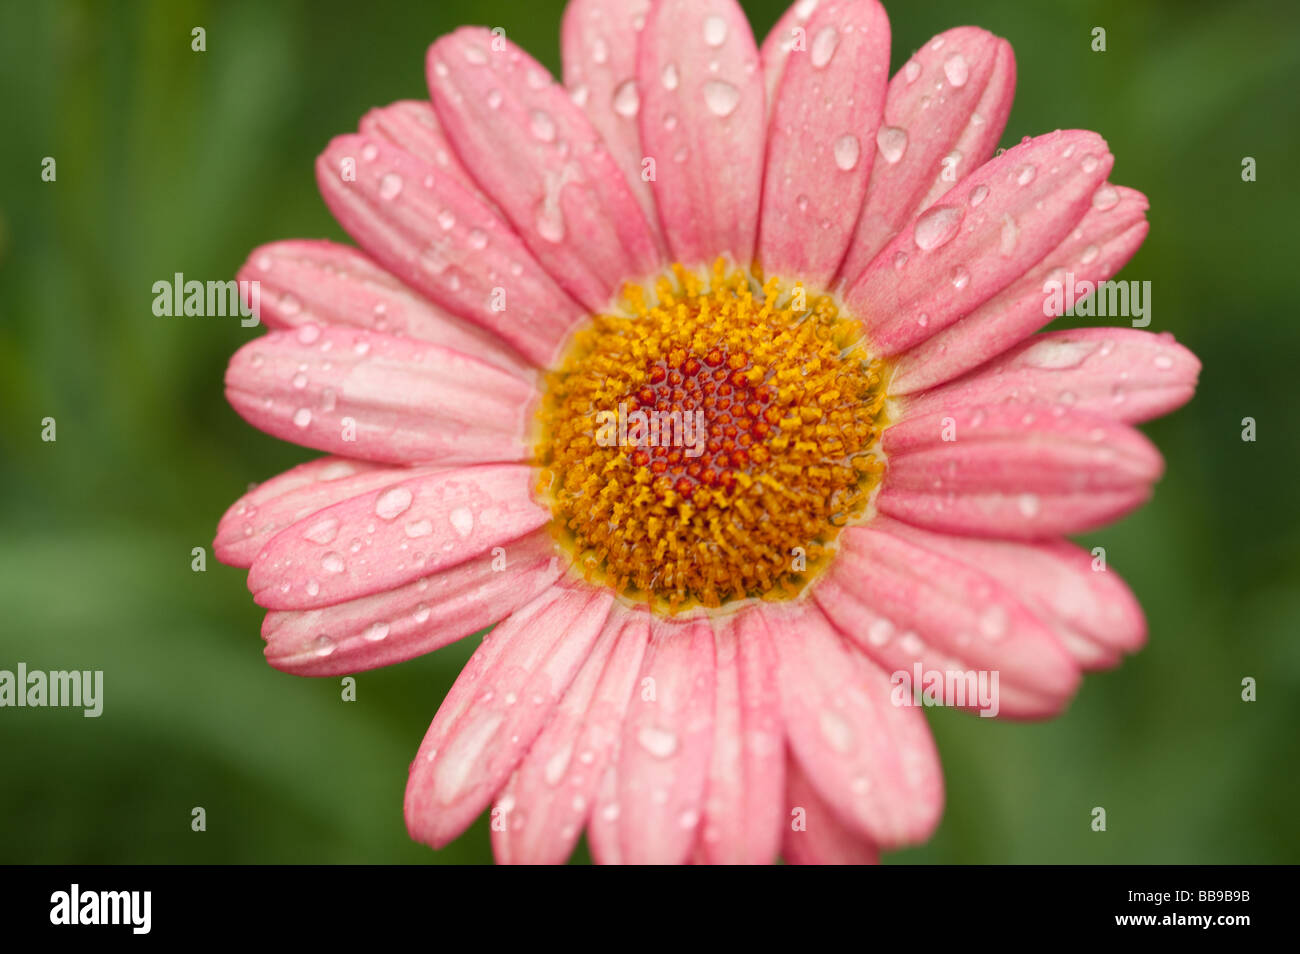 Daisy type flower stock photos daisy type flower stock images alamy close up image of daisy type flower with rain drops on it stock image izmirmasajfo